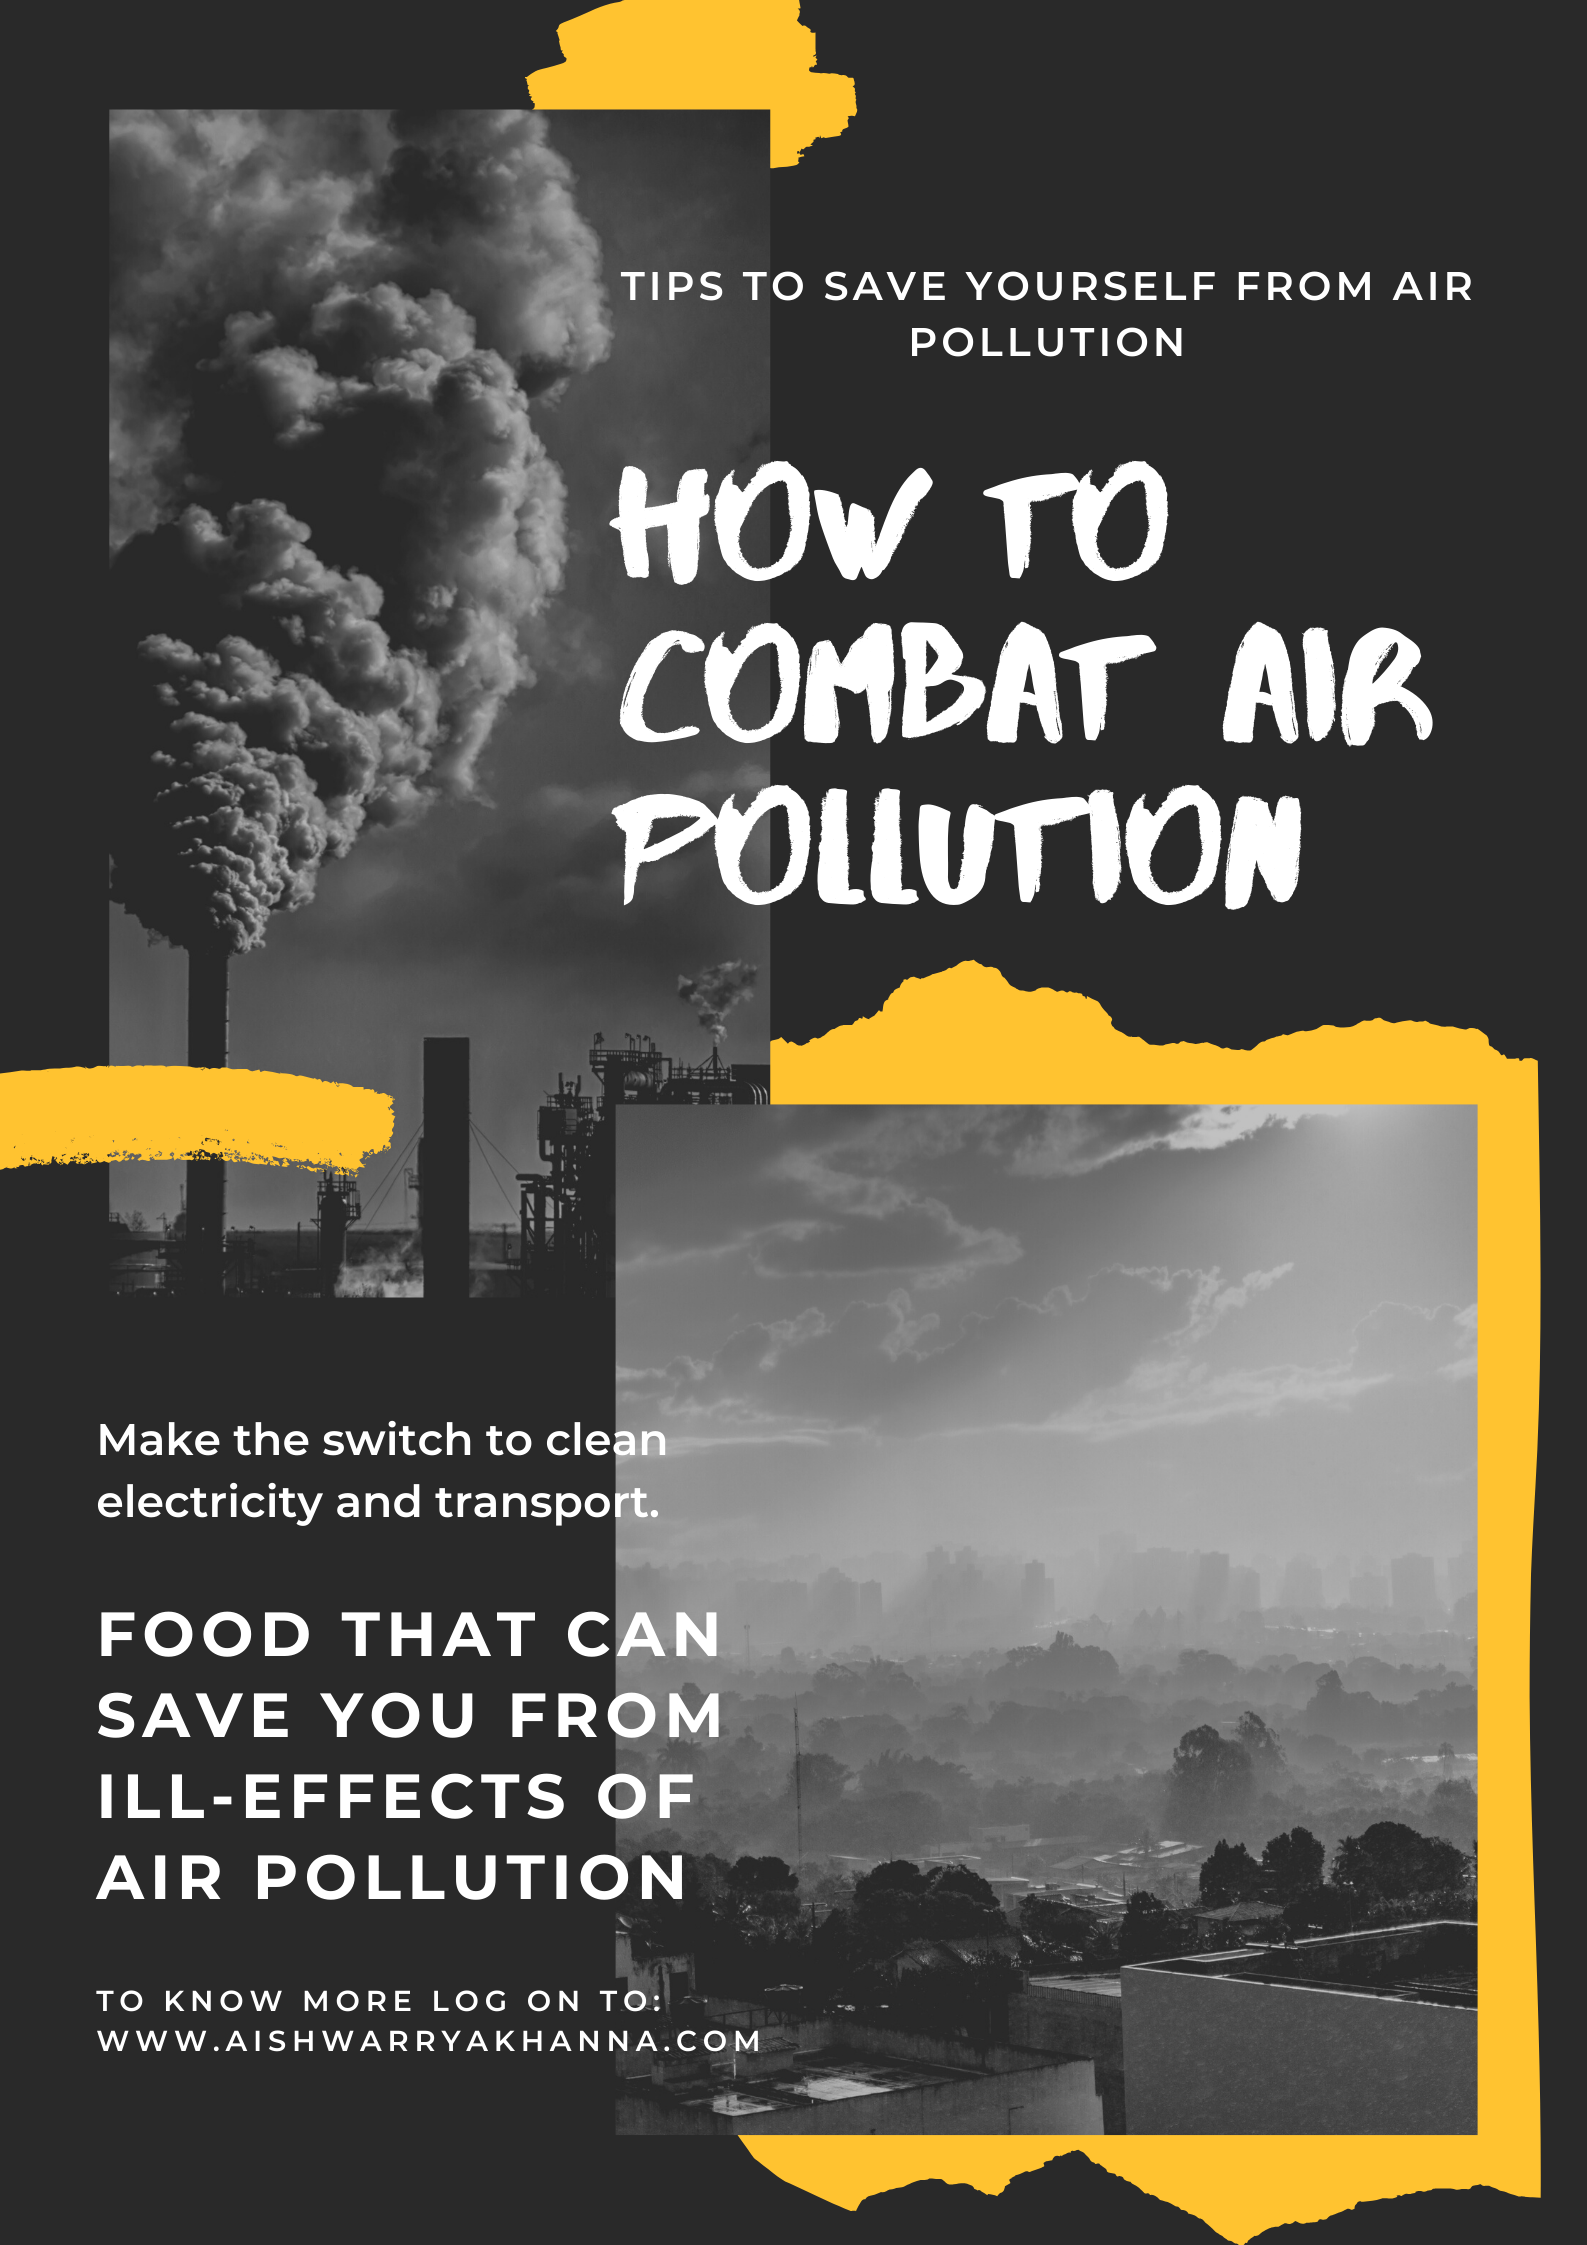 Combating Air Pollution Effects with Food